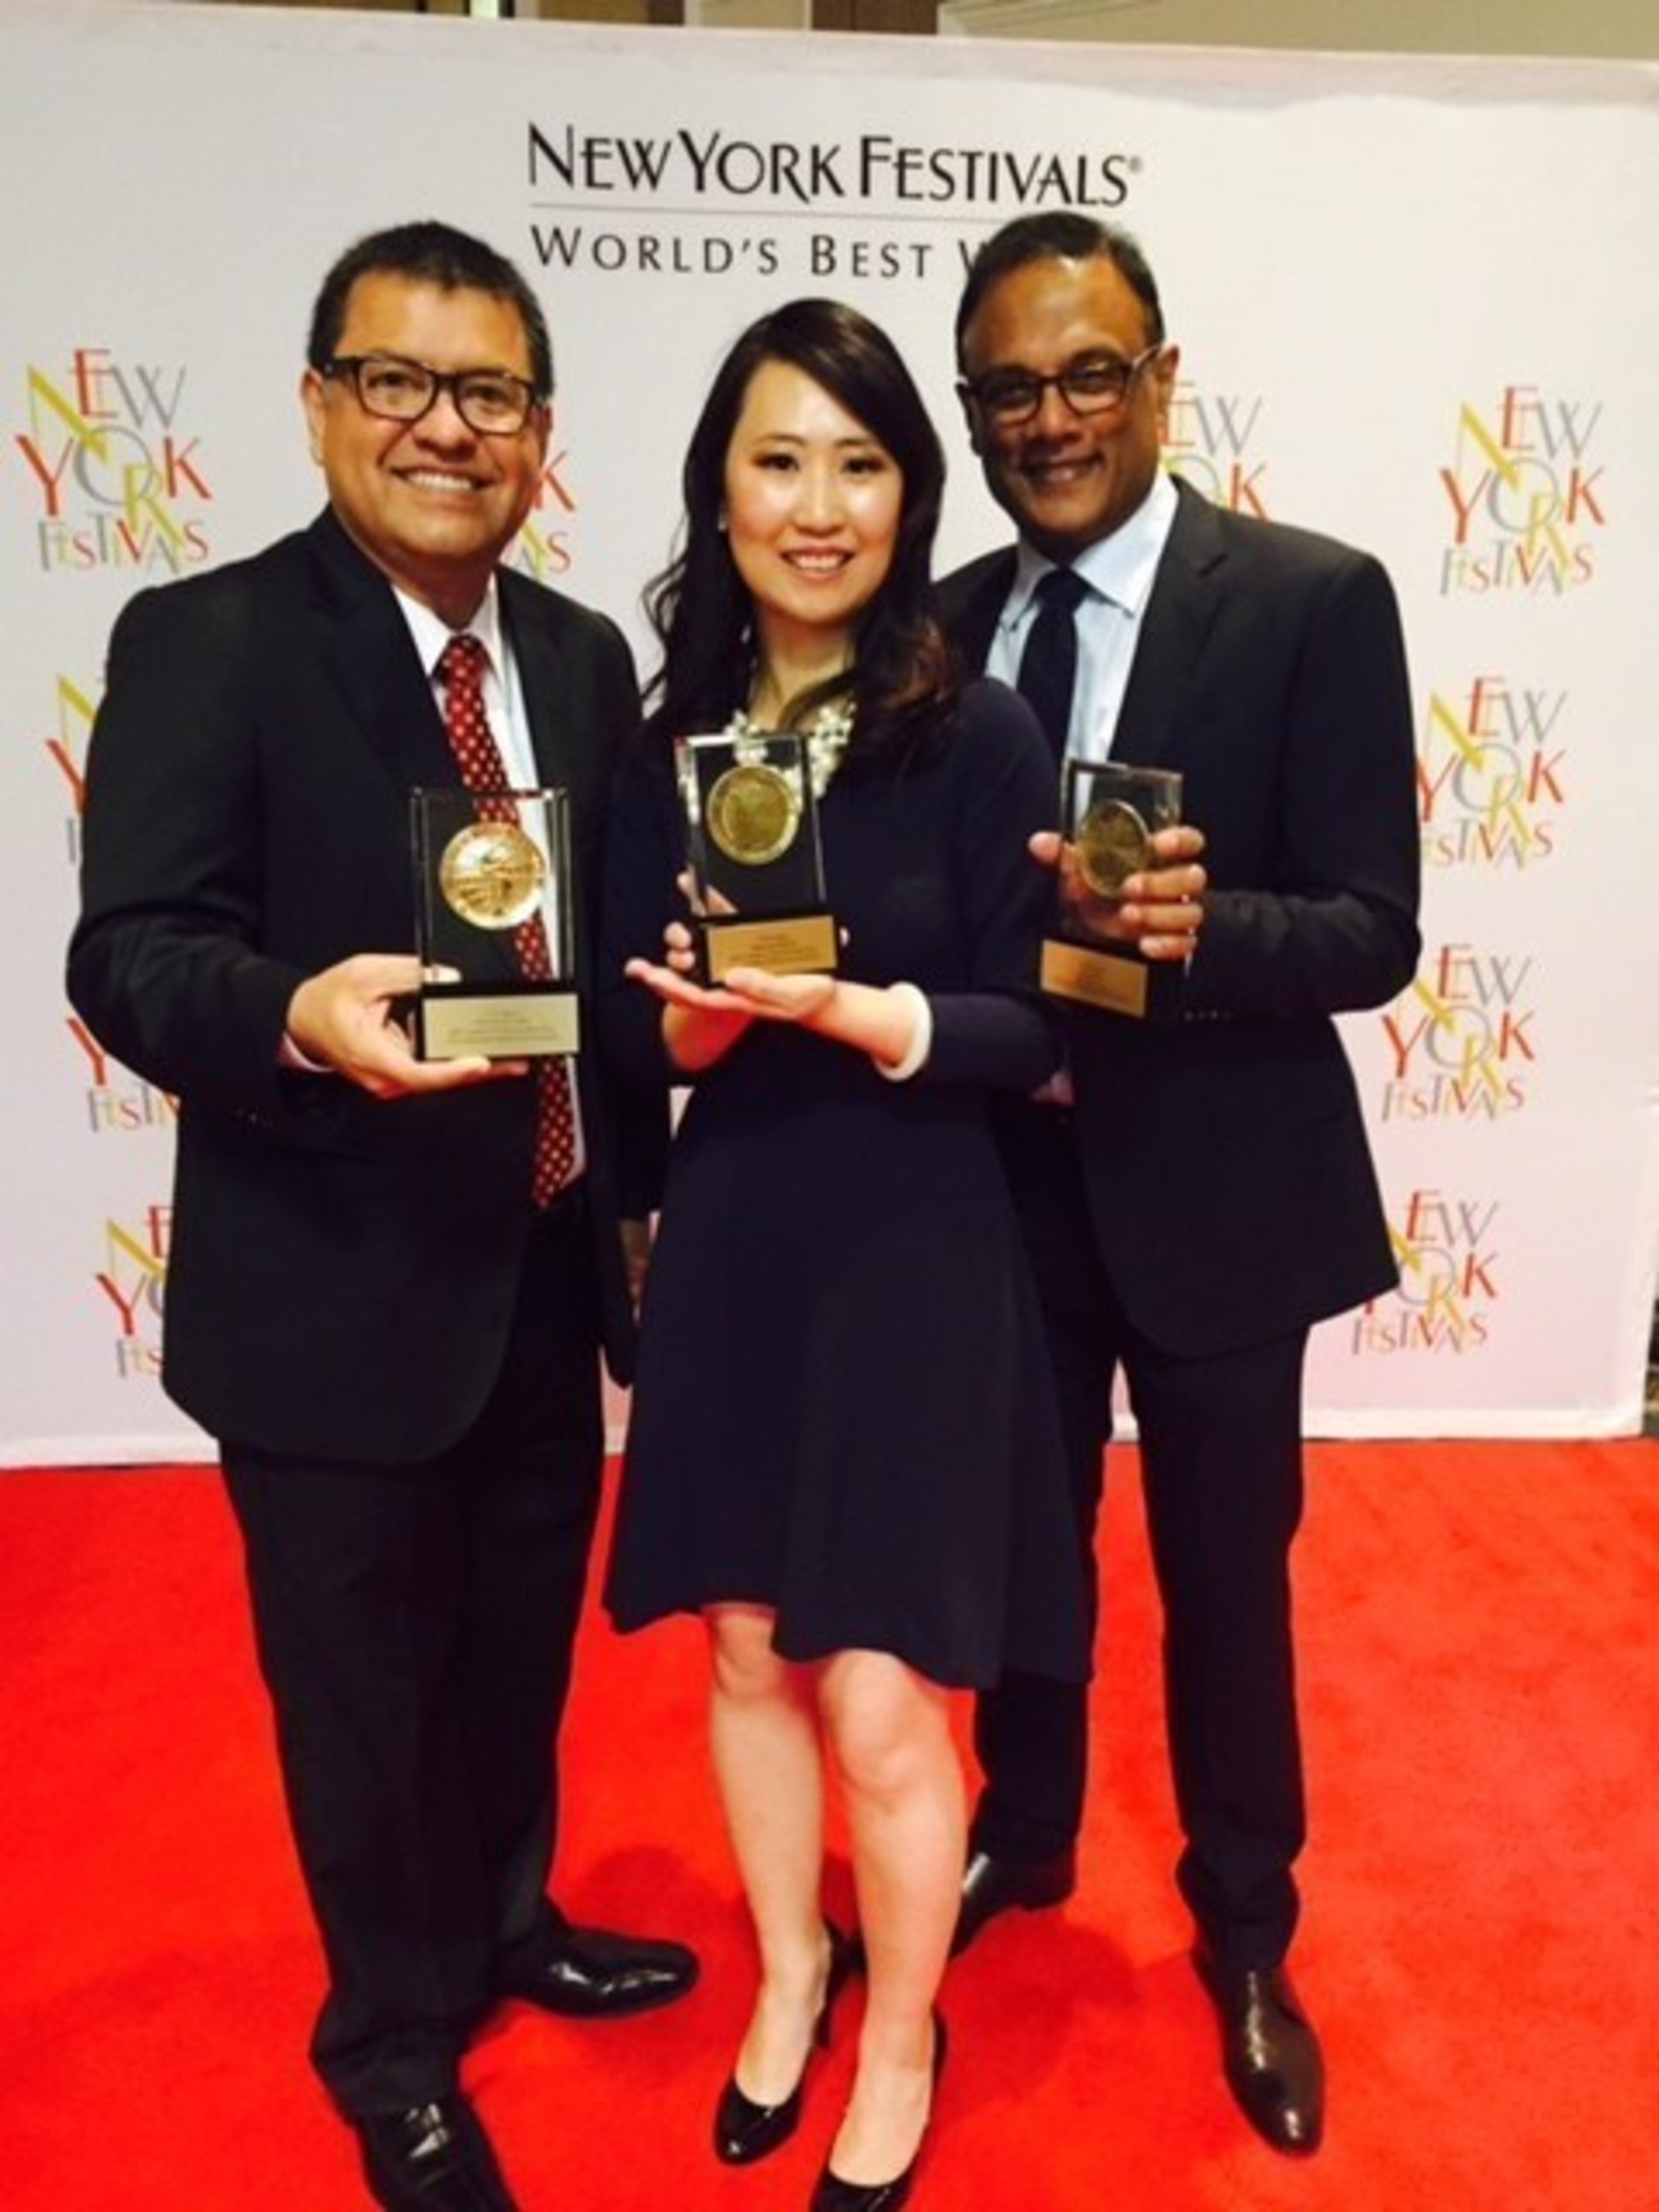 Americas Now Executive Producer Humberto Duran, Deputy Managing Editor Guo Chun and anchor Anand Naidoo with World Medals from the New York Festivals Awards for best in TV presented Tuesday night in Las Vegas